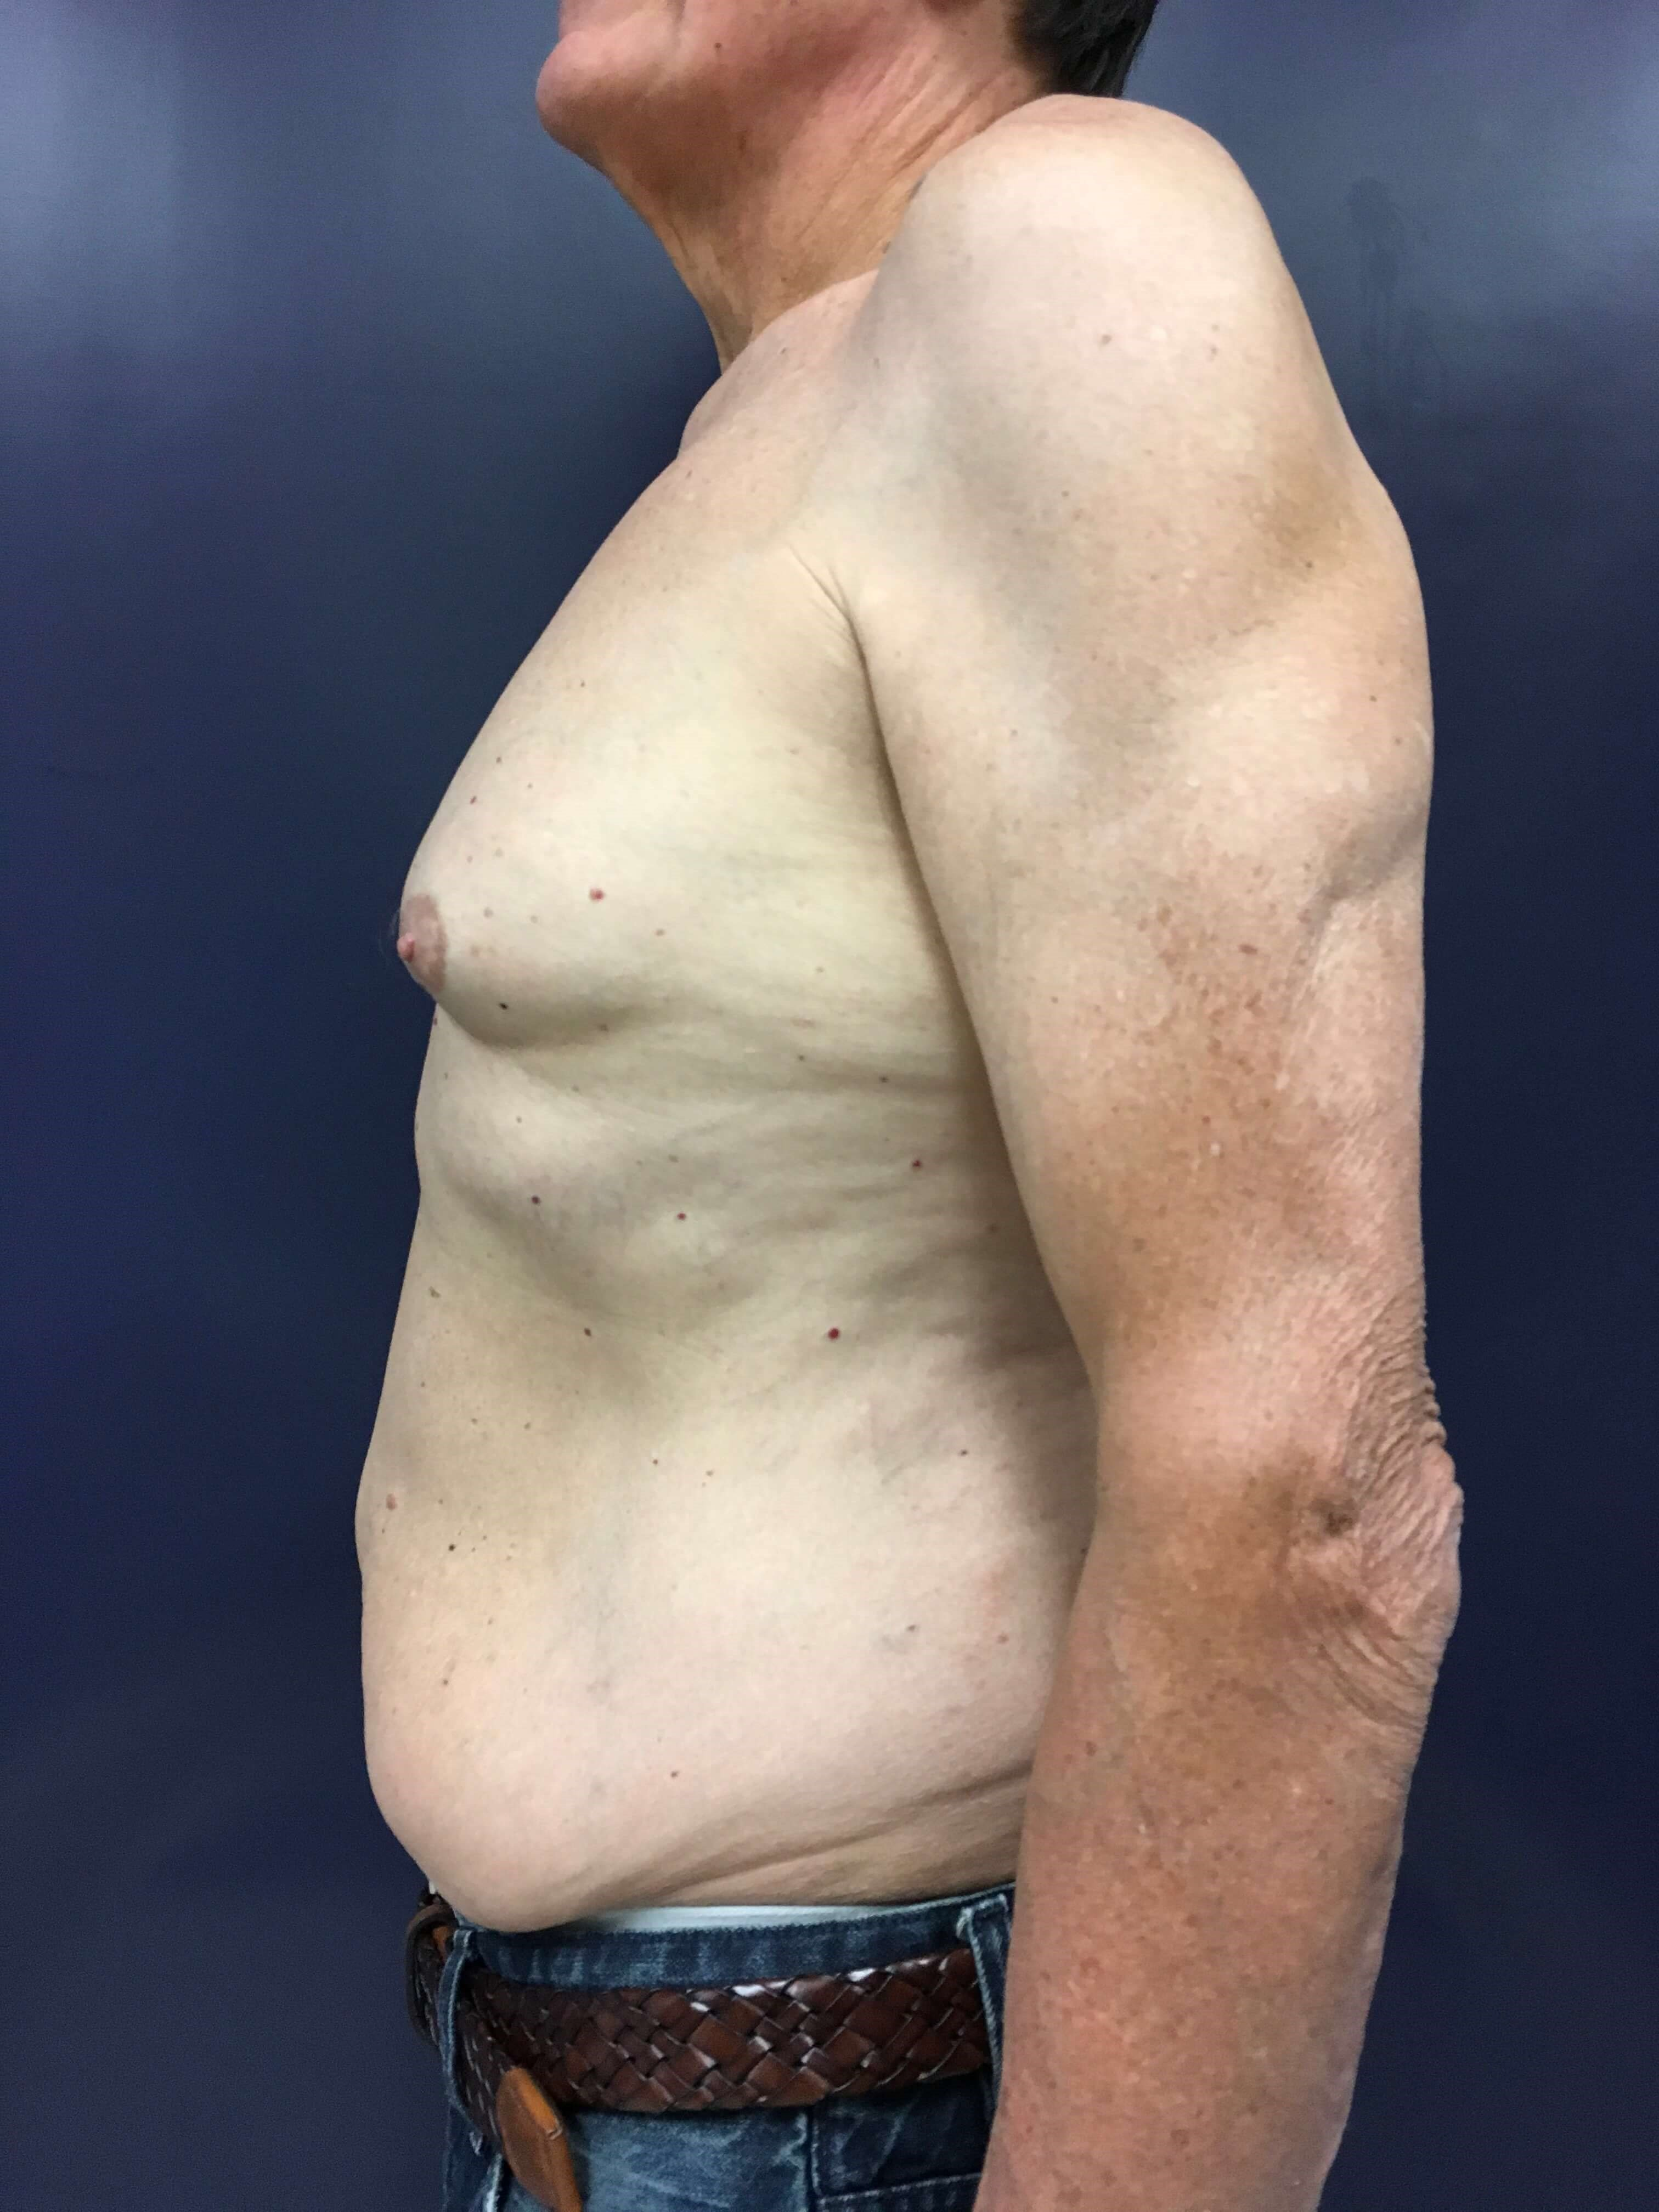 8 Weeks Post-Op Before Side View